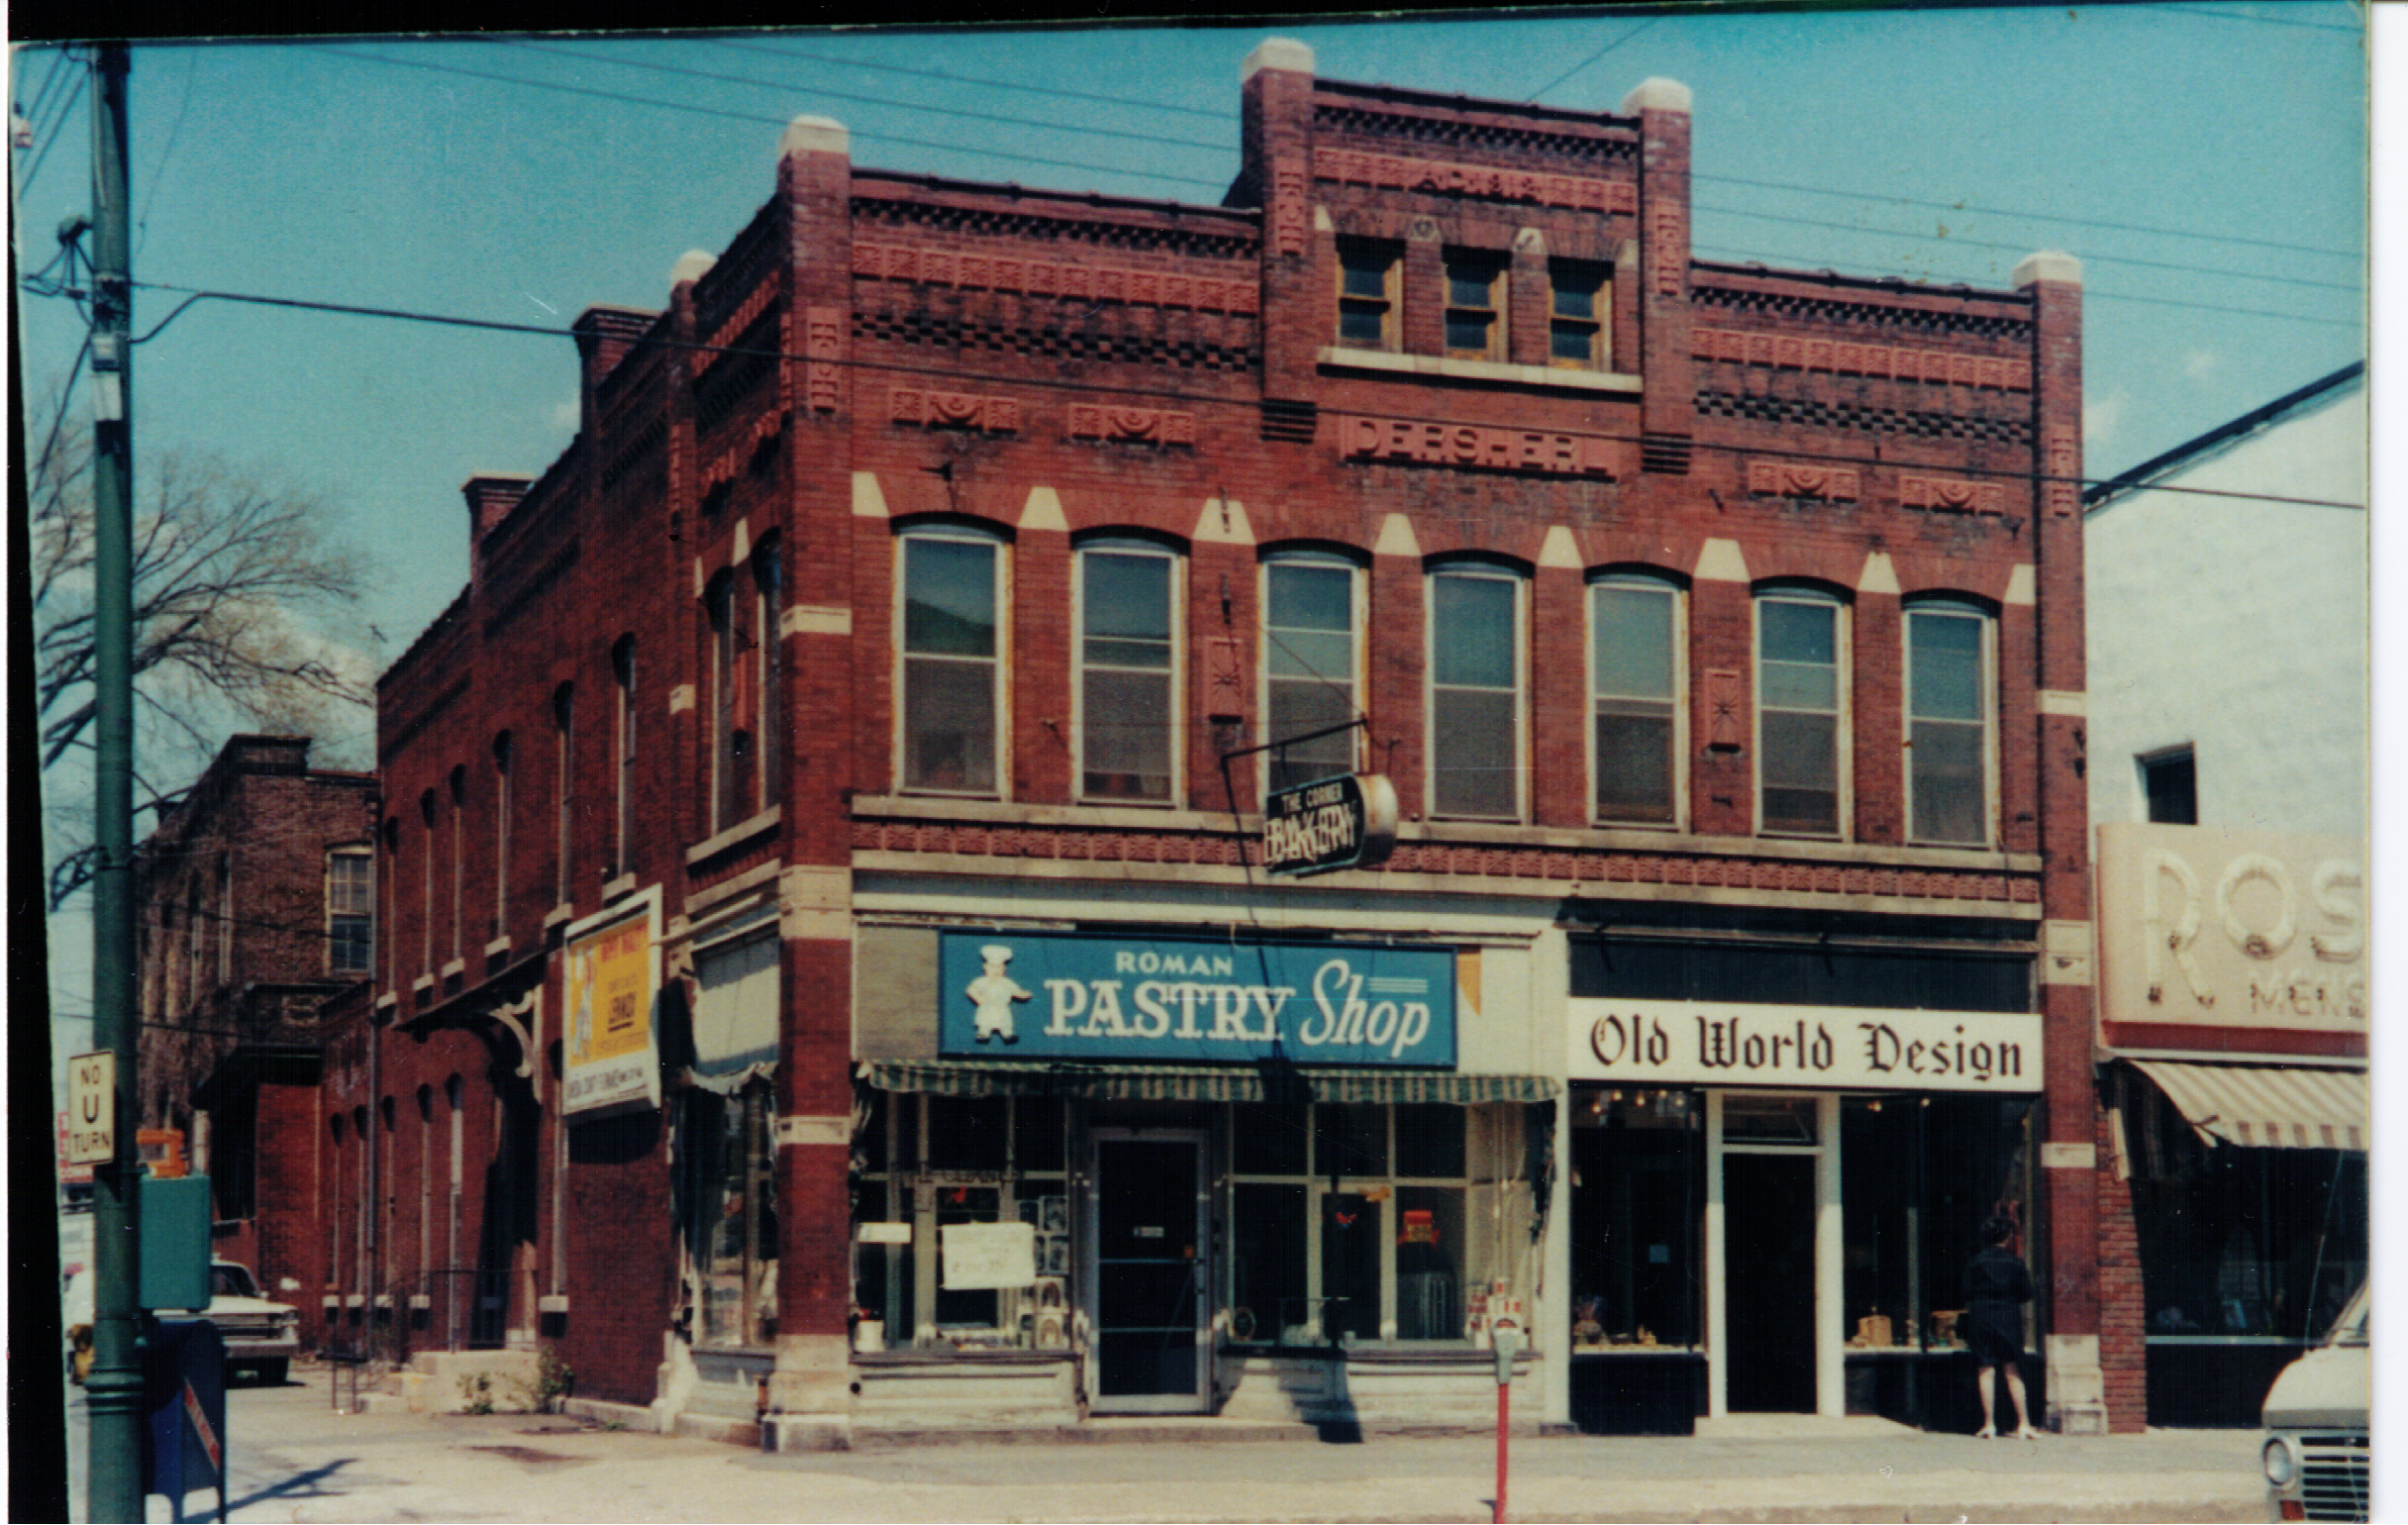 Minicozzi's Uncle Joe owned and operated Roman's Pastry Shop before it was obtained through eminent domain and leveled for construction of the fort.